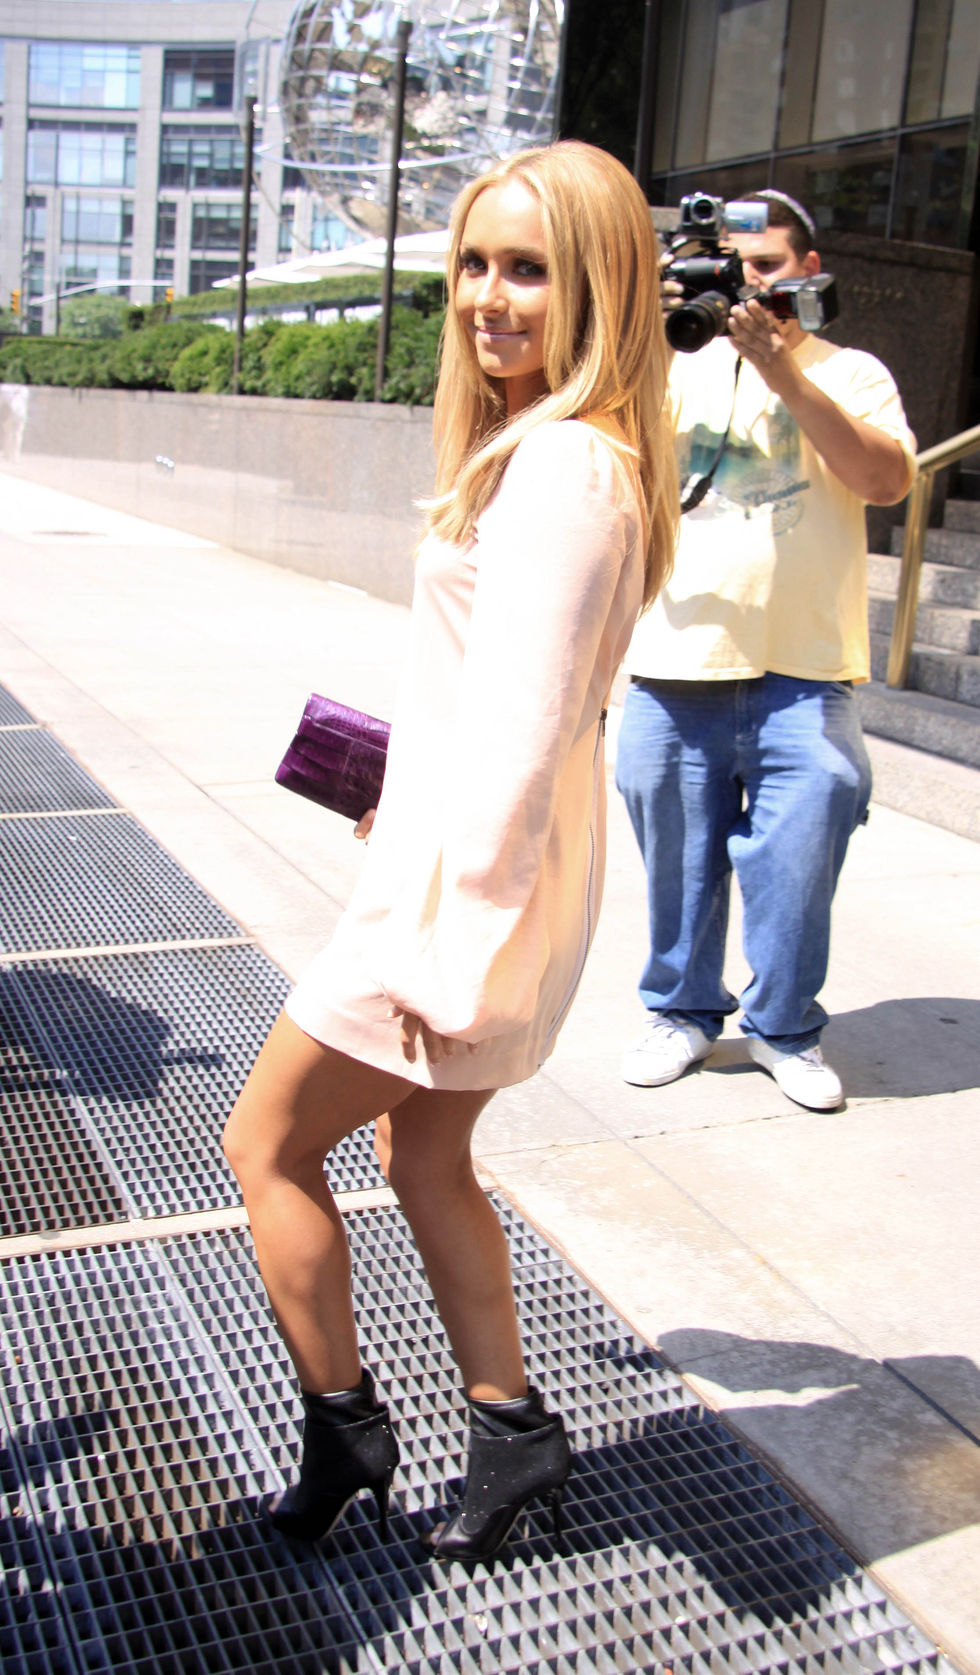 hayden-panettiere-leggy-candids-at-mtv-studios-in-new-york-01